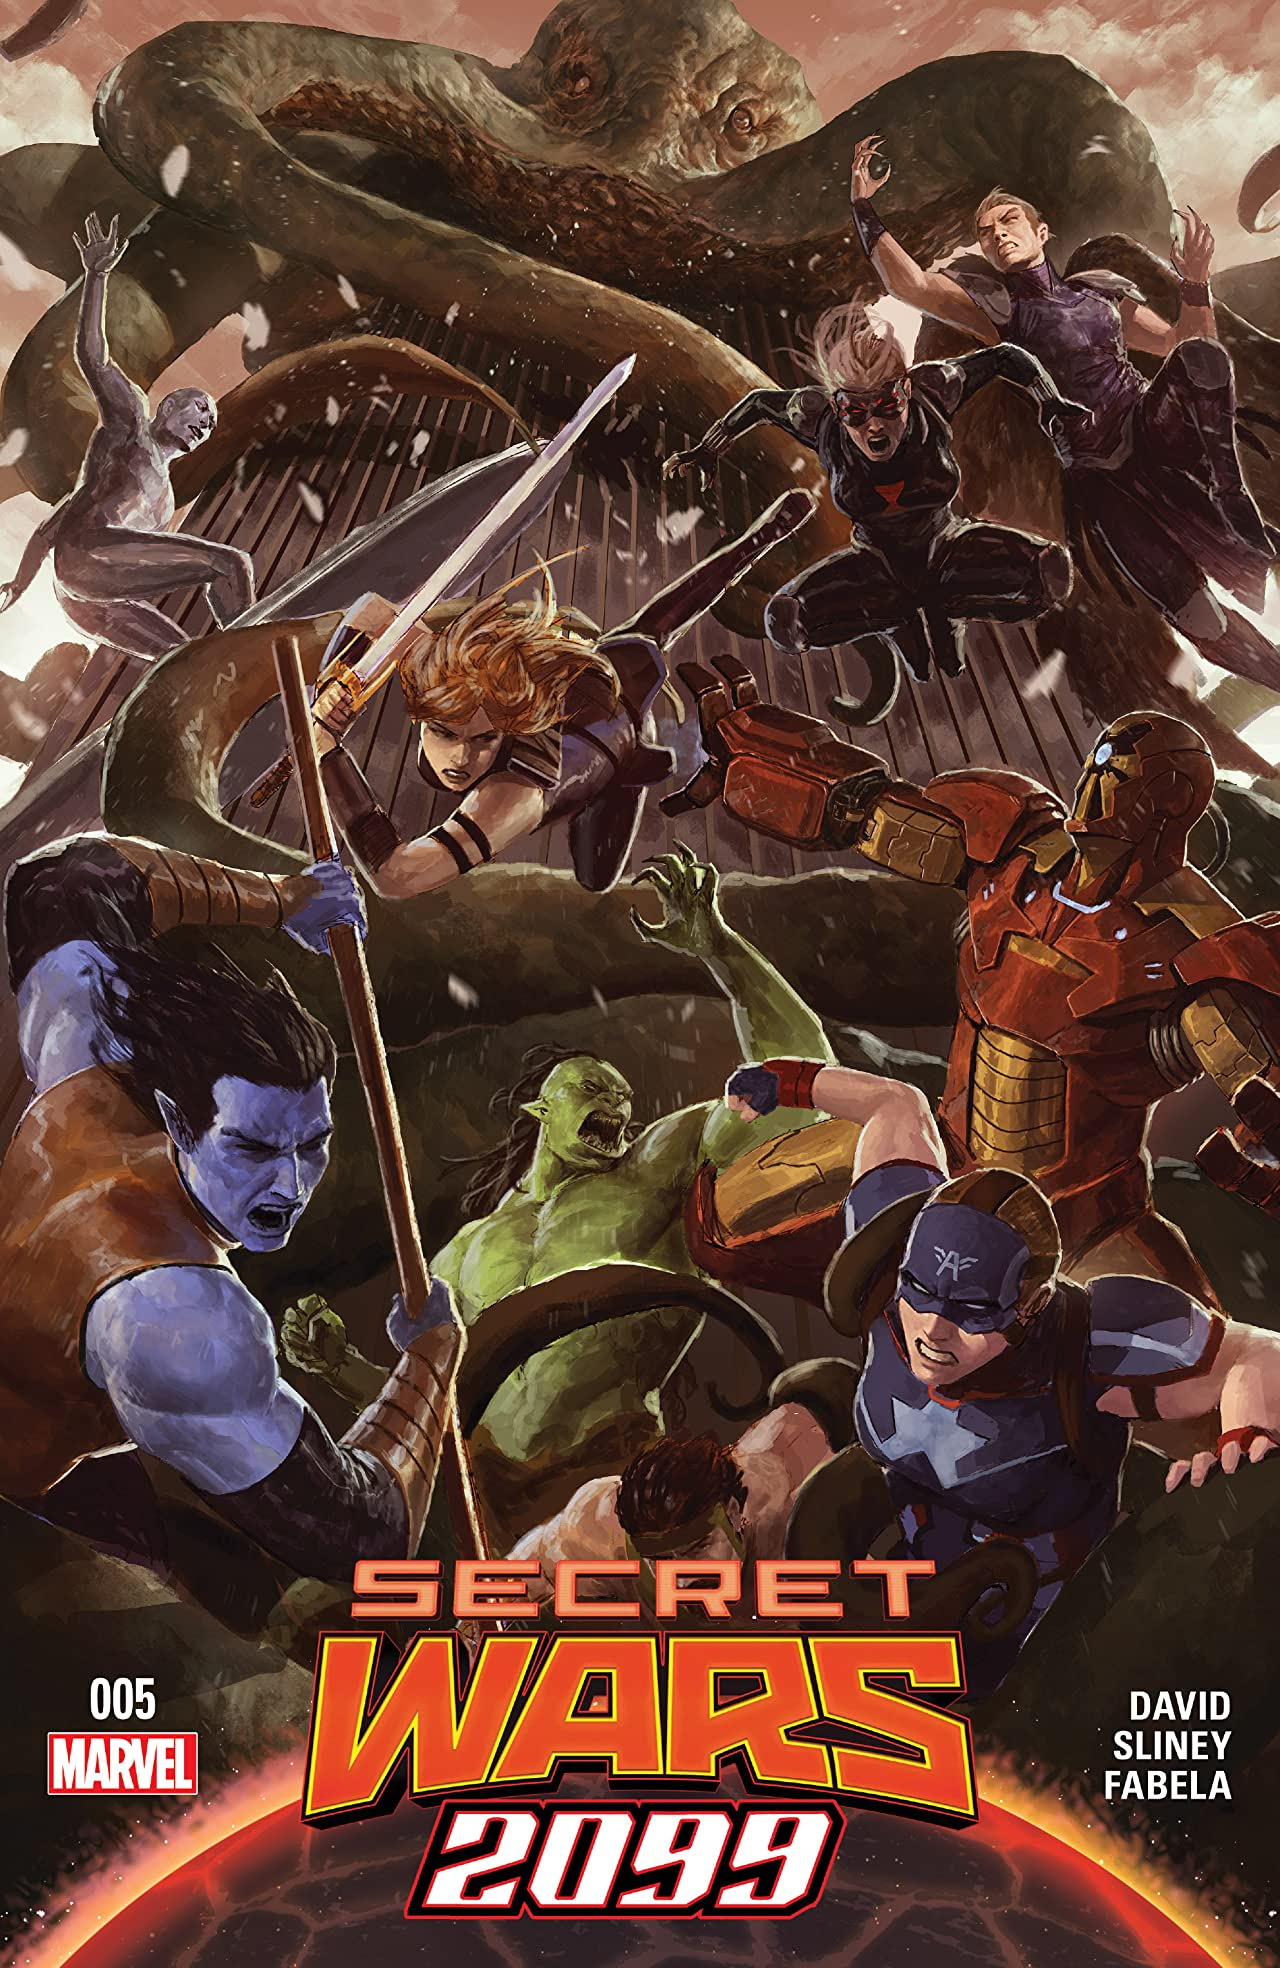 Secret Wars 2099 (2015) #5 (of 5)